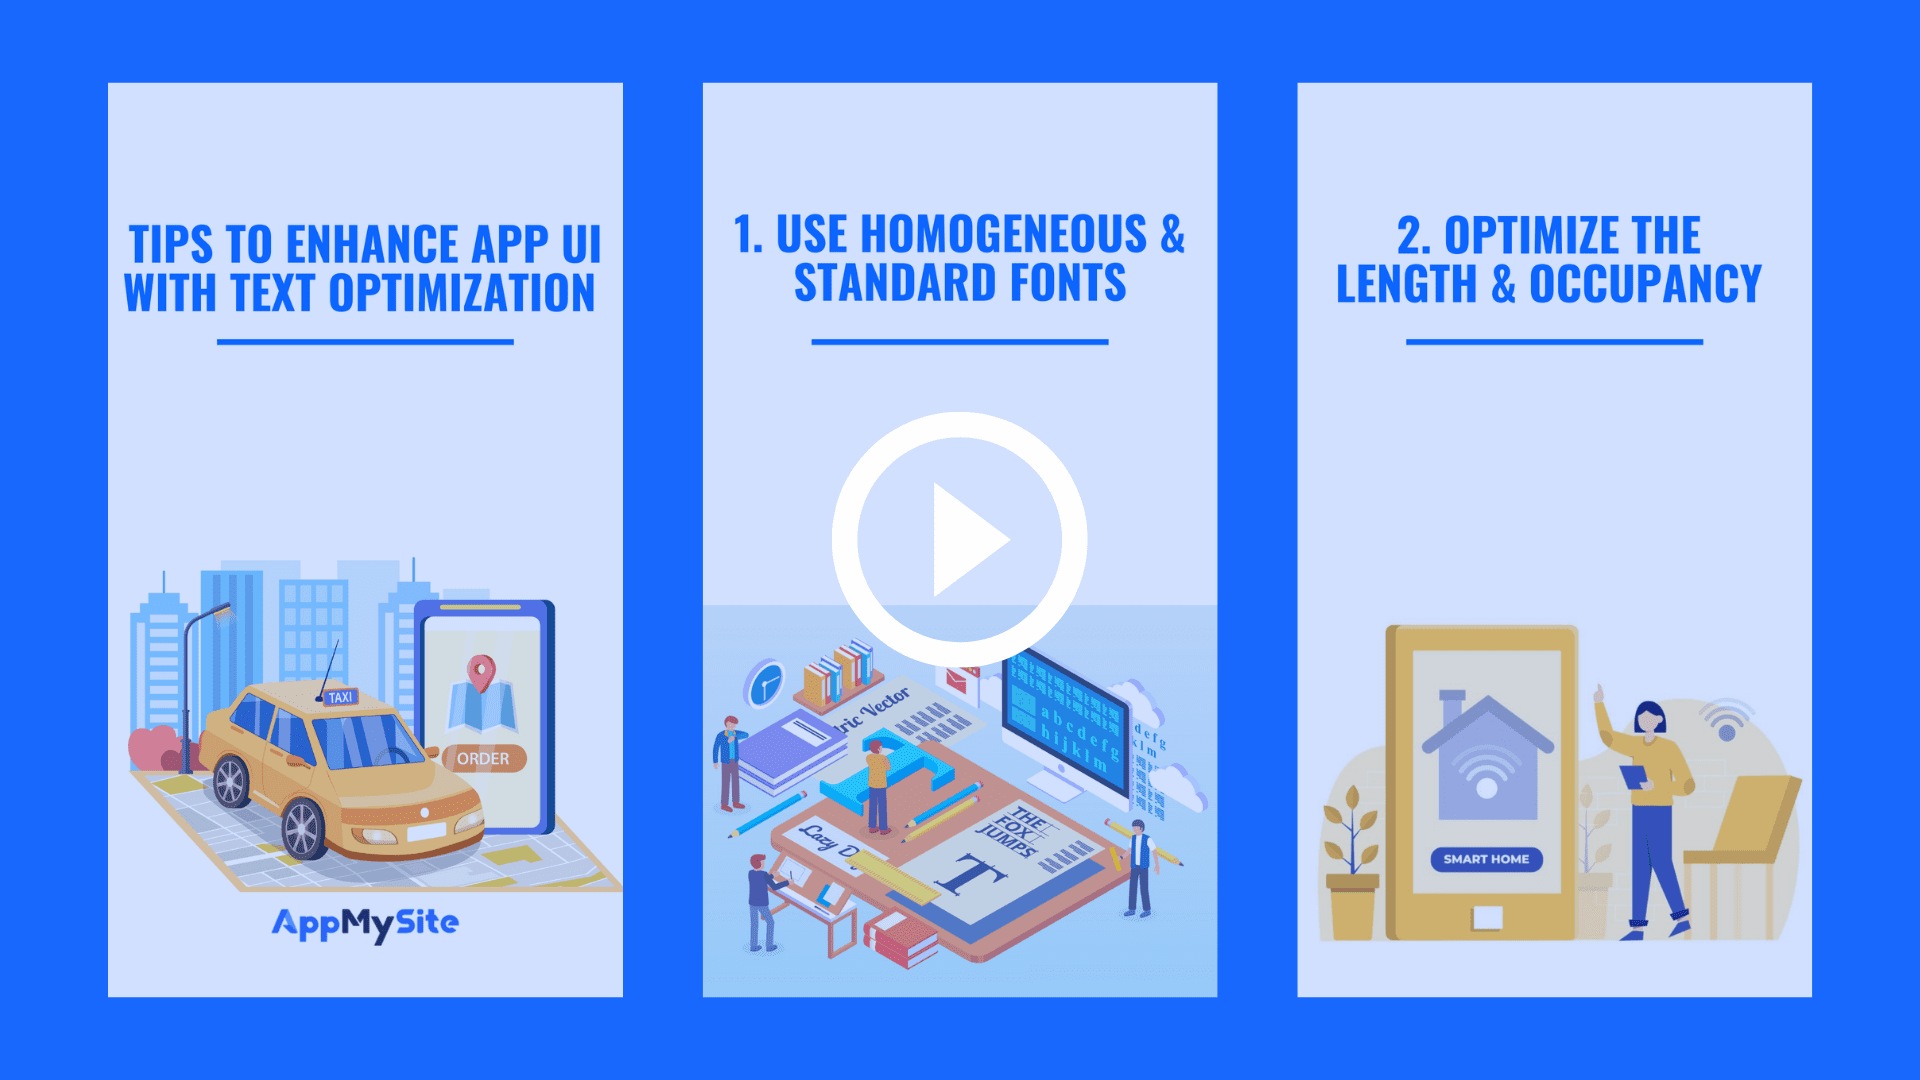 Tips to enhance app UI with text optimization